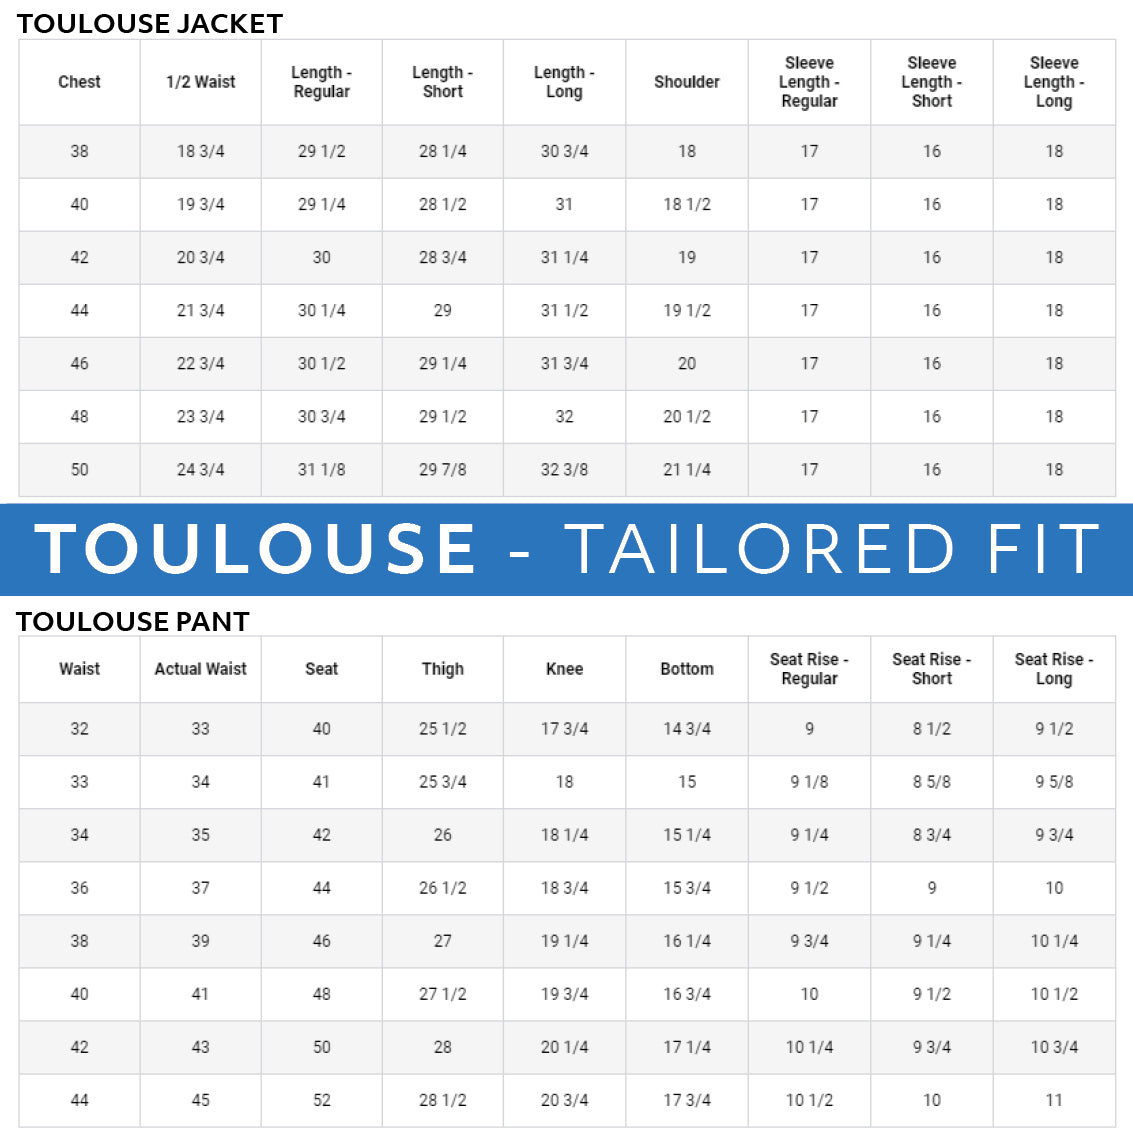 Haspel seersucker suit size charts. Toulouse Tailored Fit